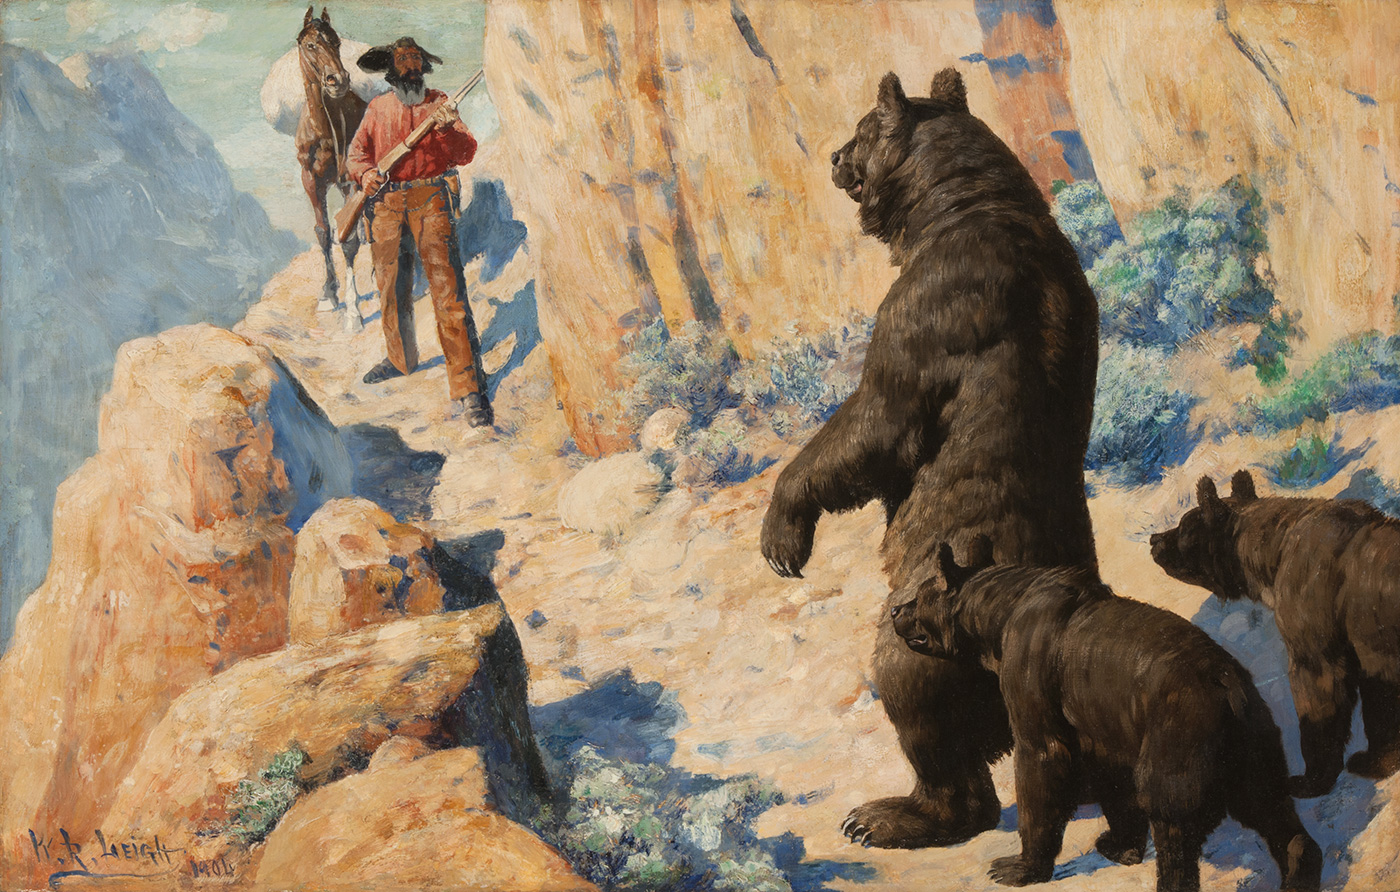 A man on a mountain path faces a standing bear with two cubs.